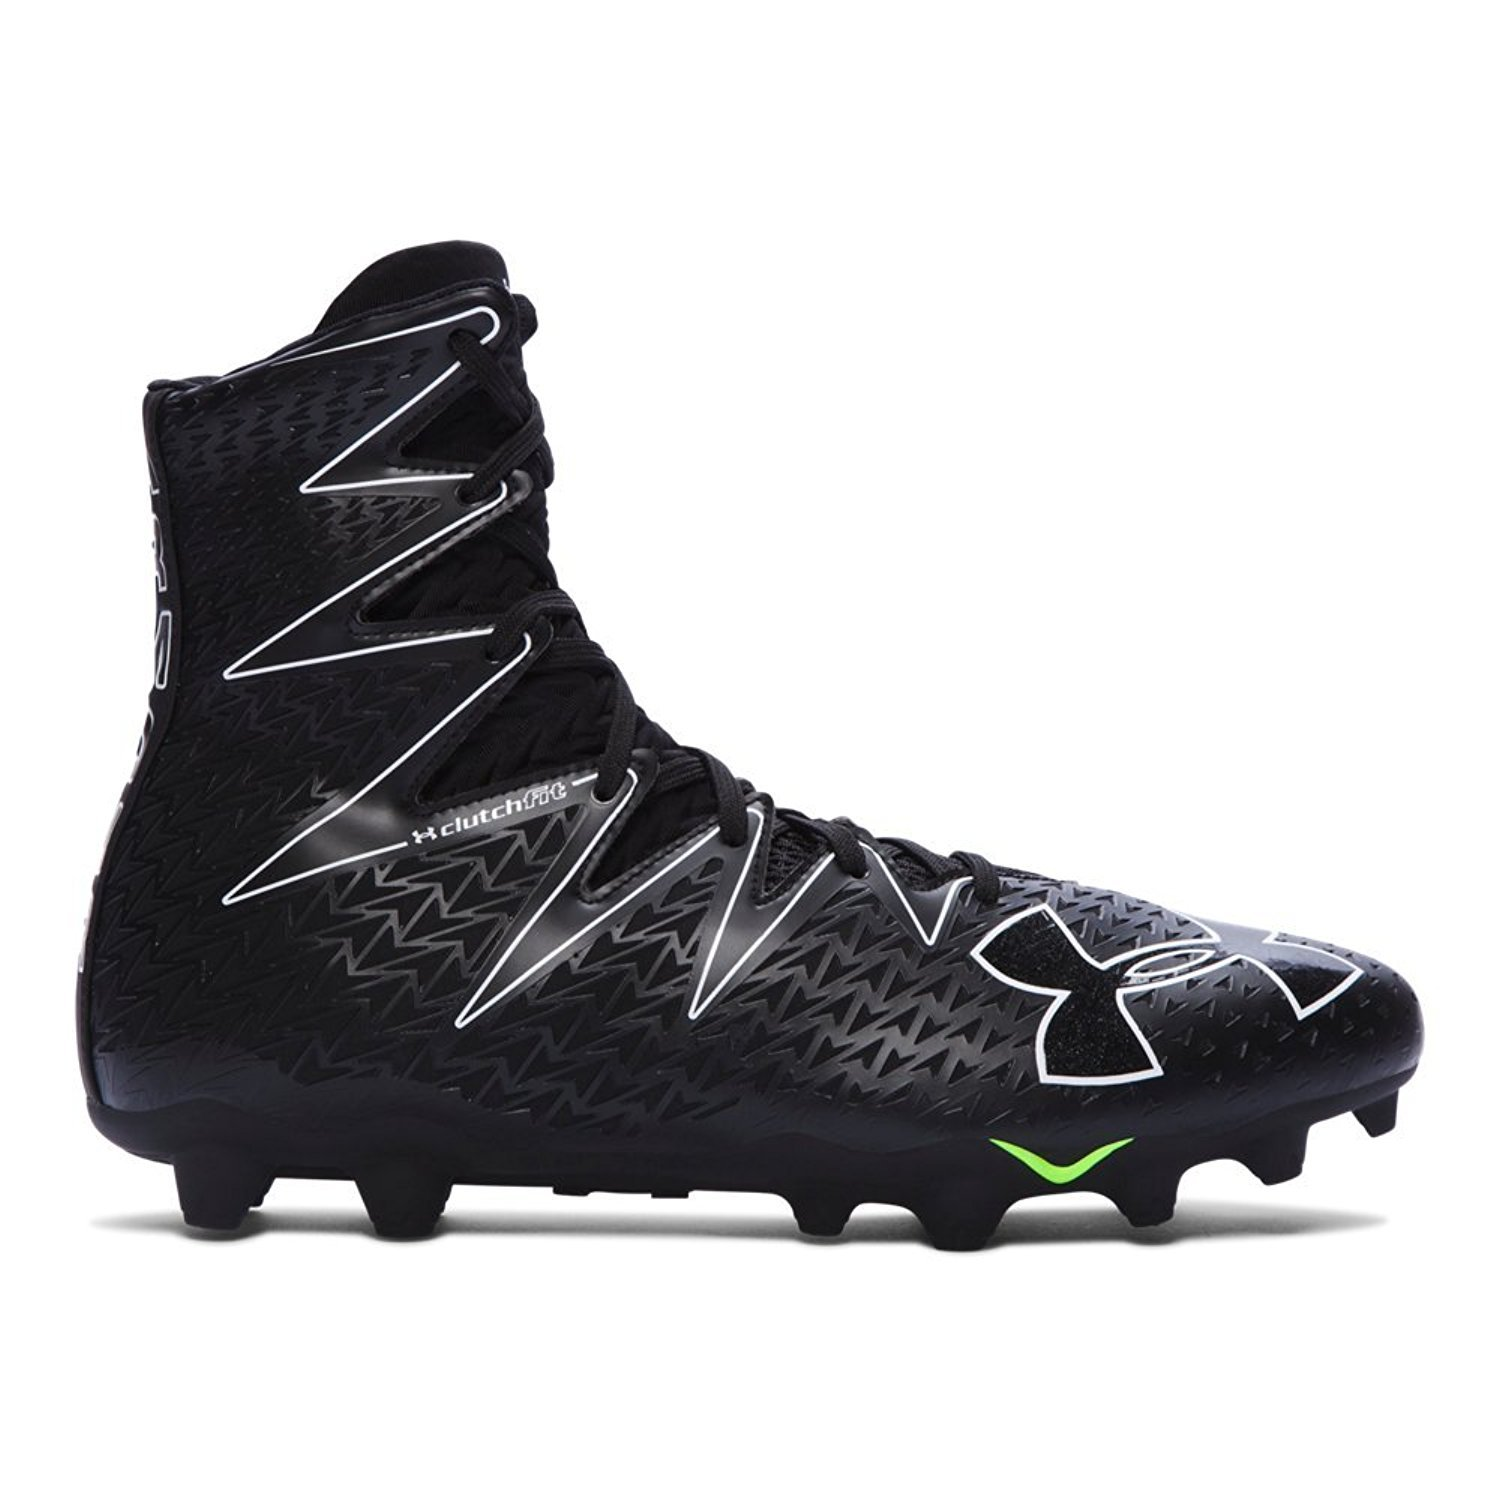 innovative design 027d2 1c5a5 Under Armour Mens Highlight MC Football Cleats